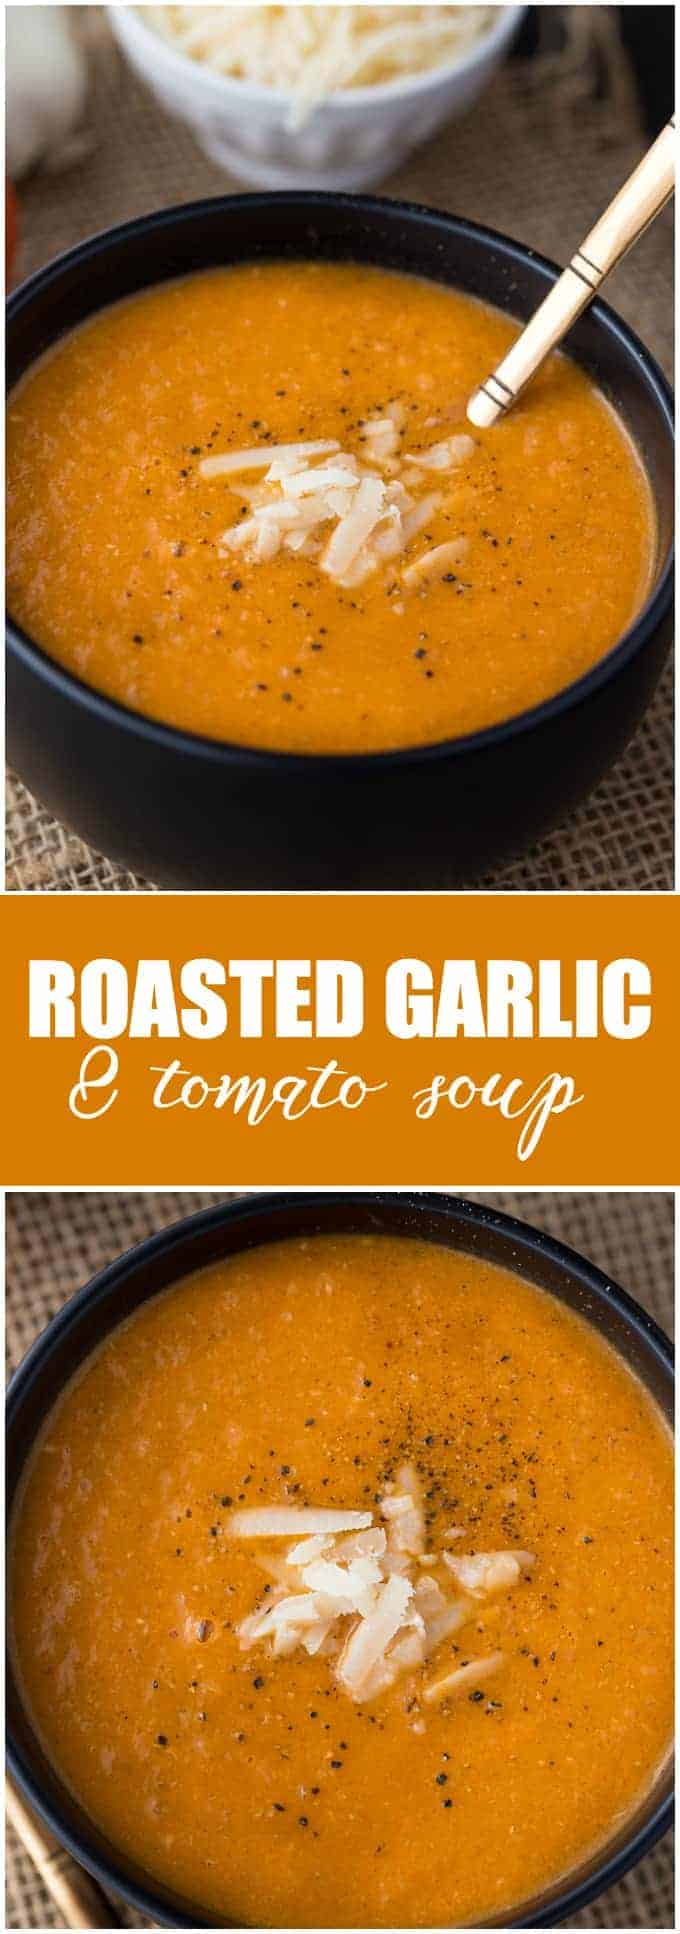 Roasted Garlic & Tomato Soup - A creamy, smooth soup with a spicy kick!